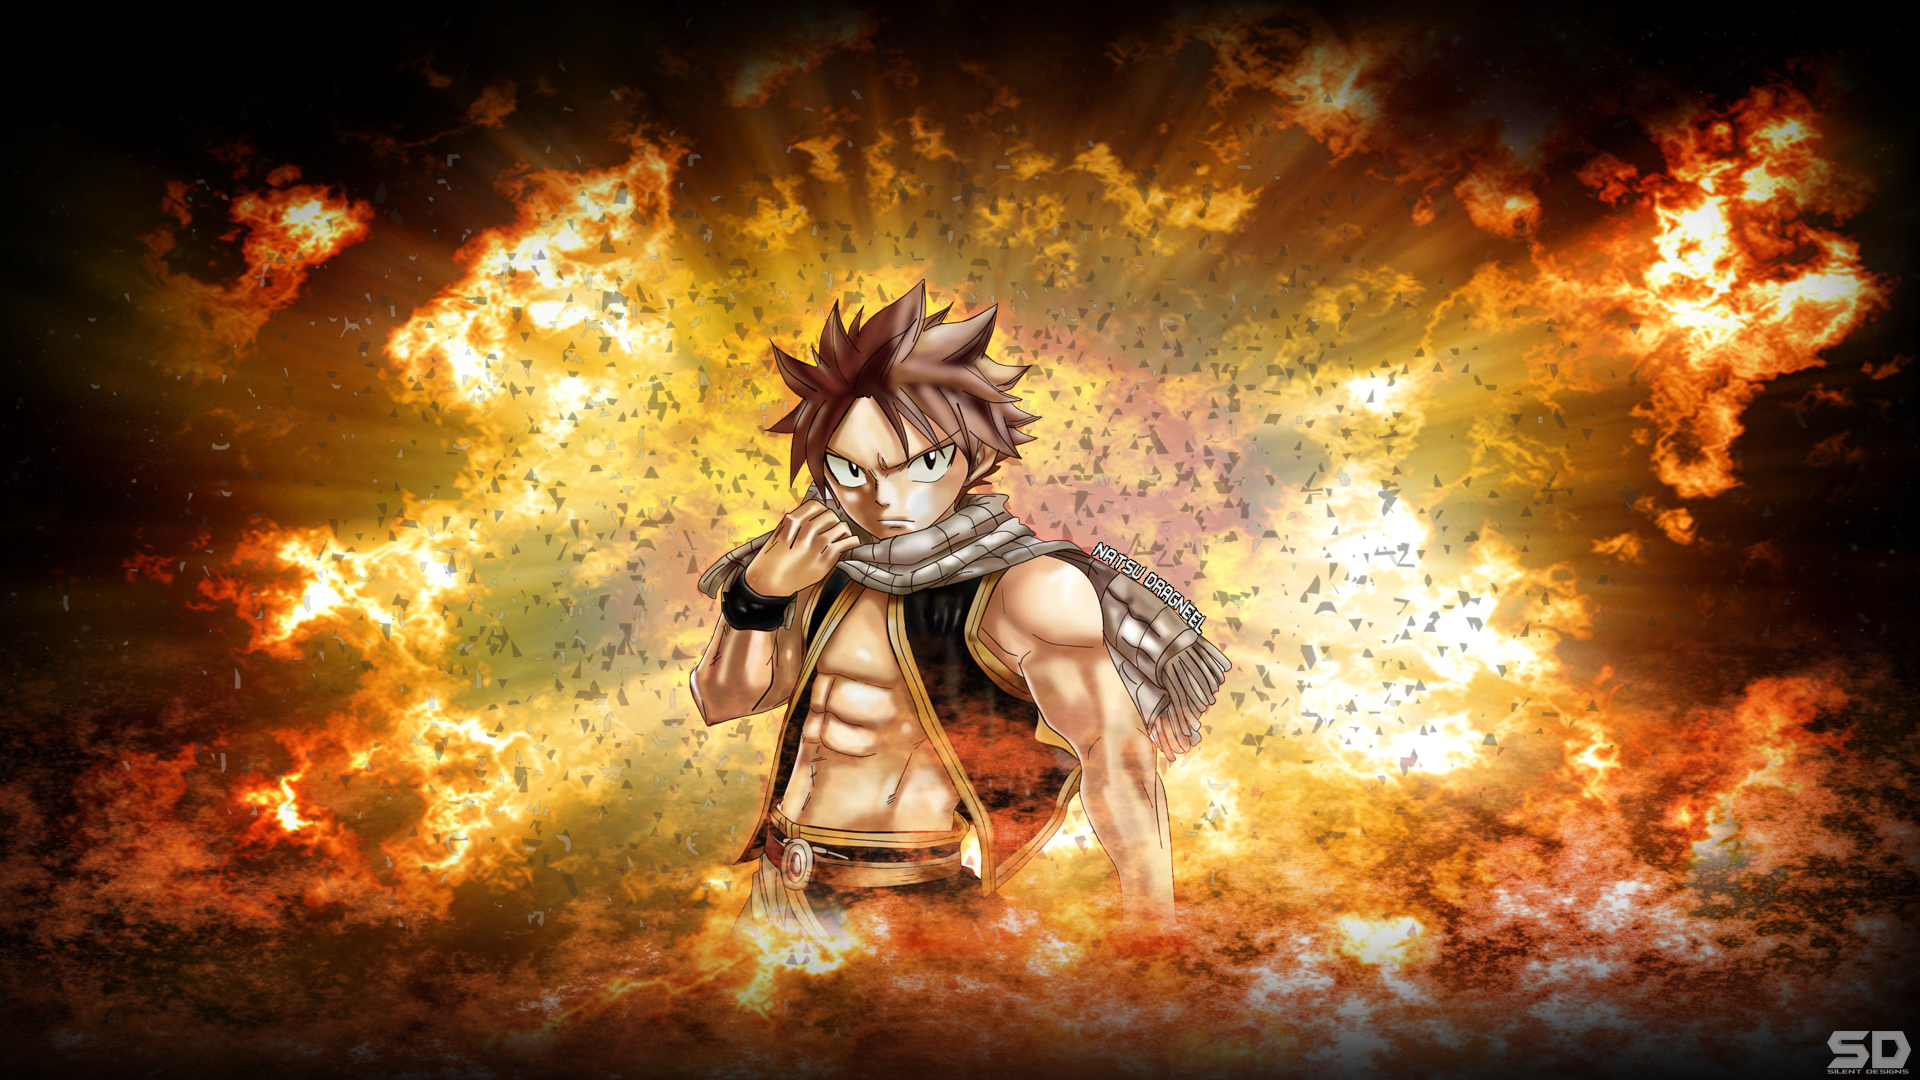 Fairy Tail Wallpaper Natsu Dragneel by Silent  Designs 1920x1080